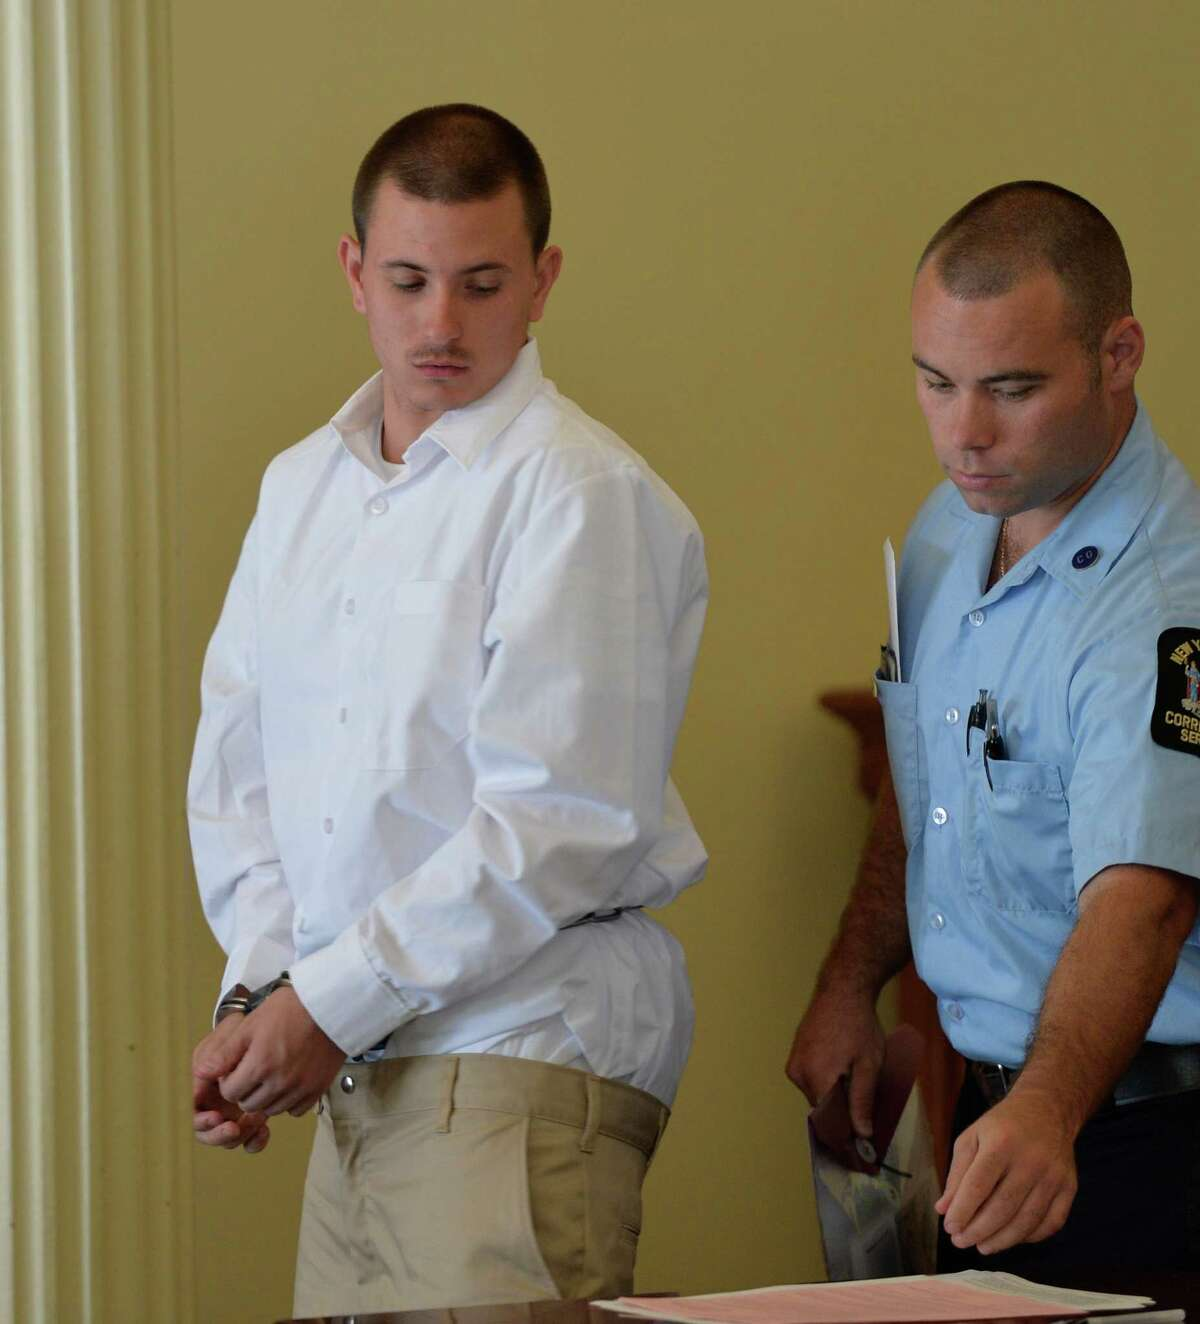 Defendant John Halacy leaves the courtroom after his sentencing in Rensselaer County Court on Monday morning, Aug. 25, 2014, in Troy, N.Y. (Skip Dickstein/Times Union archive)